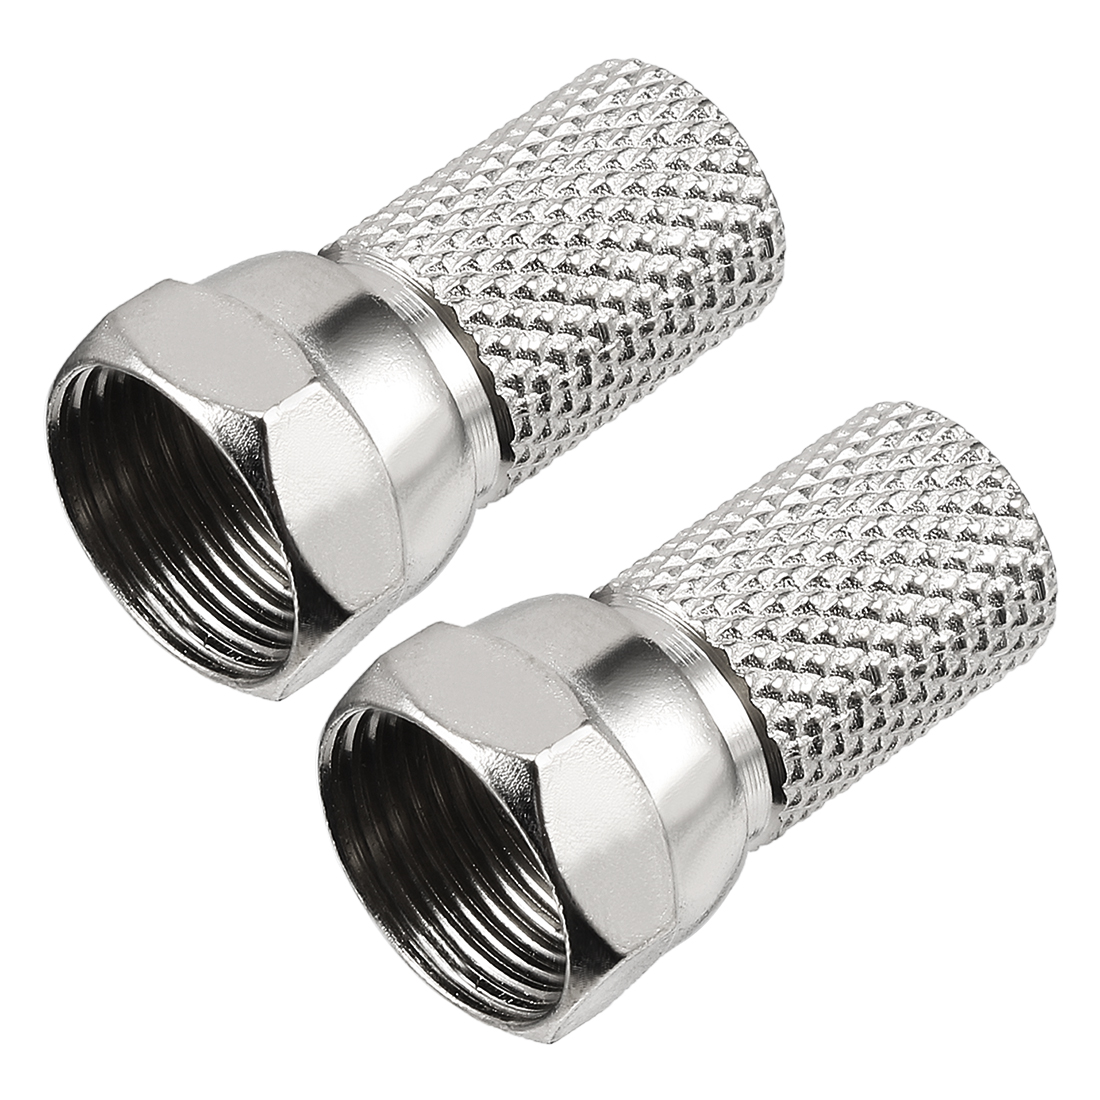 2 Pcs Silver Tone Metric F Male Jack RF Coaxial Adapter Connector